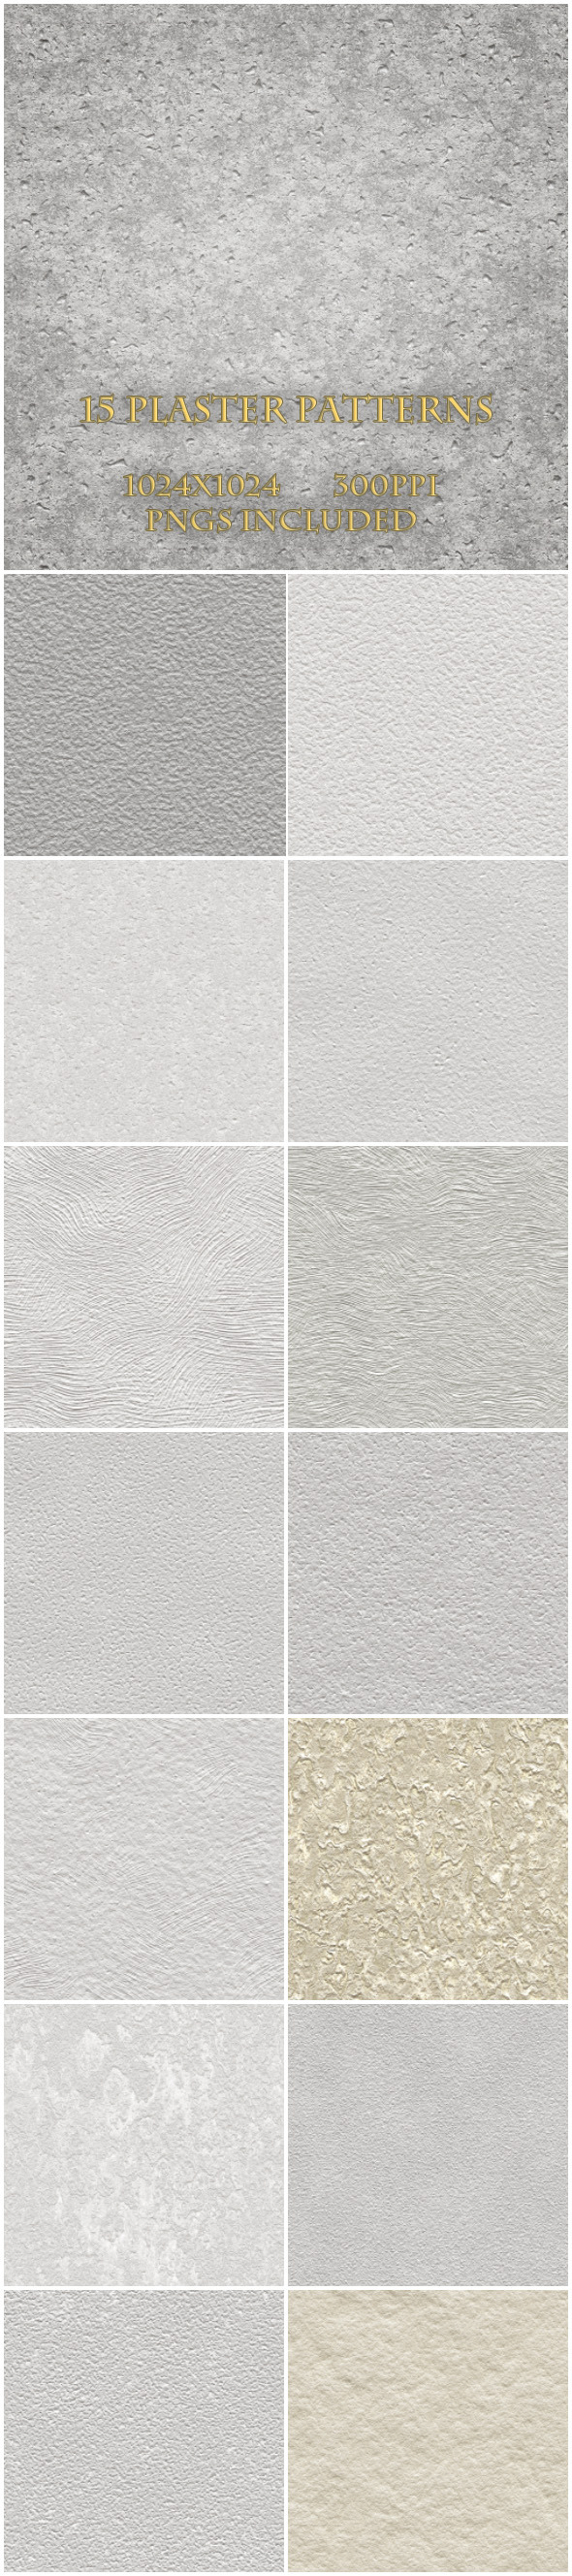 15 Plaster Textures - Urban Textures / Fills / Patterns